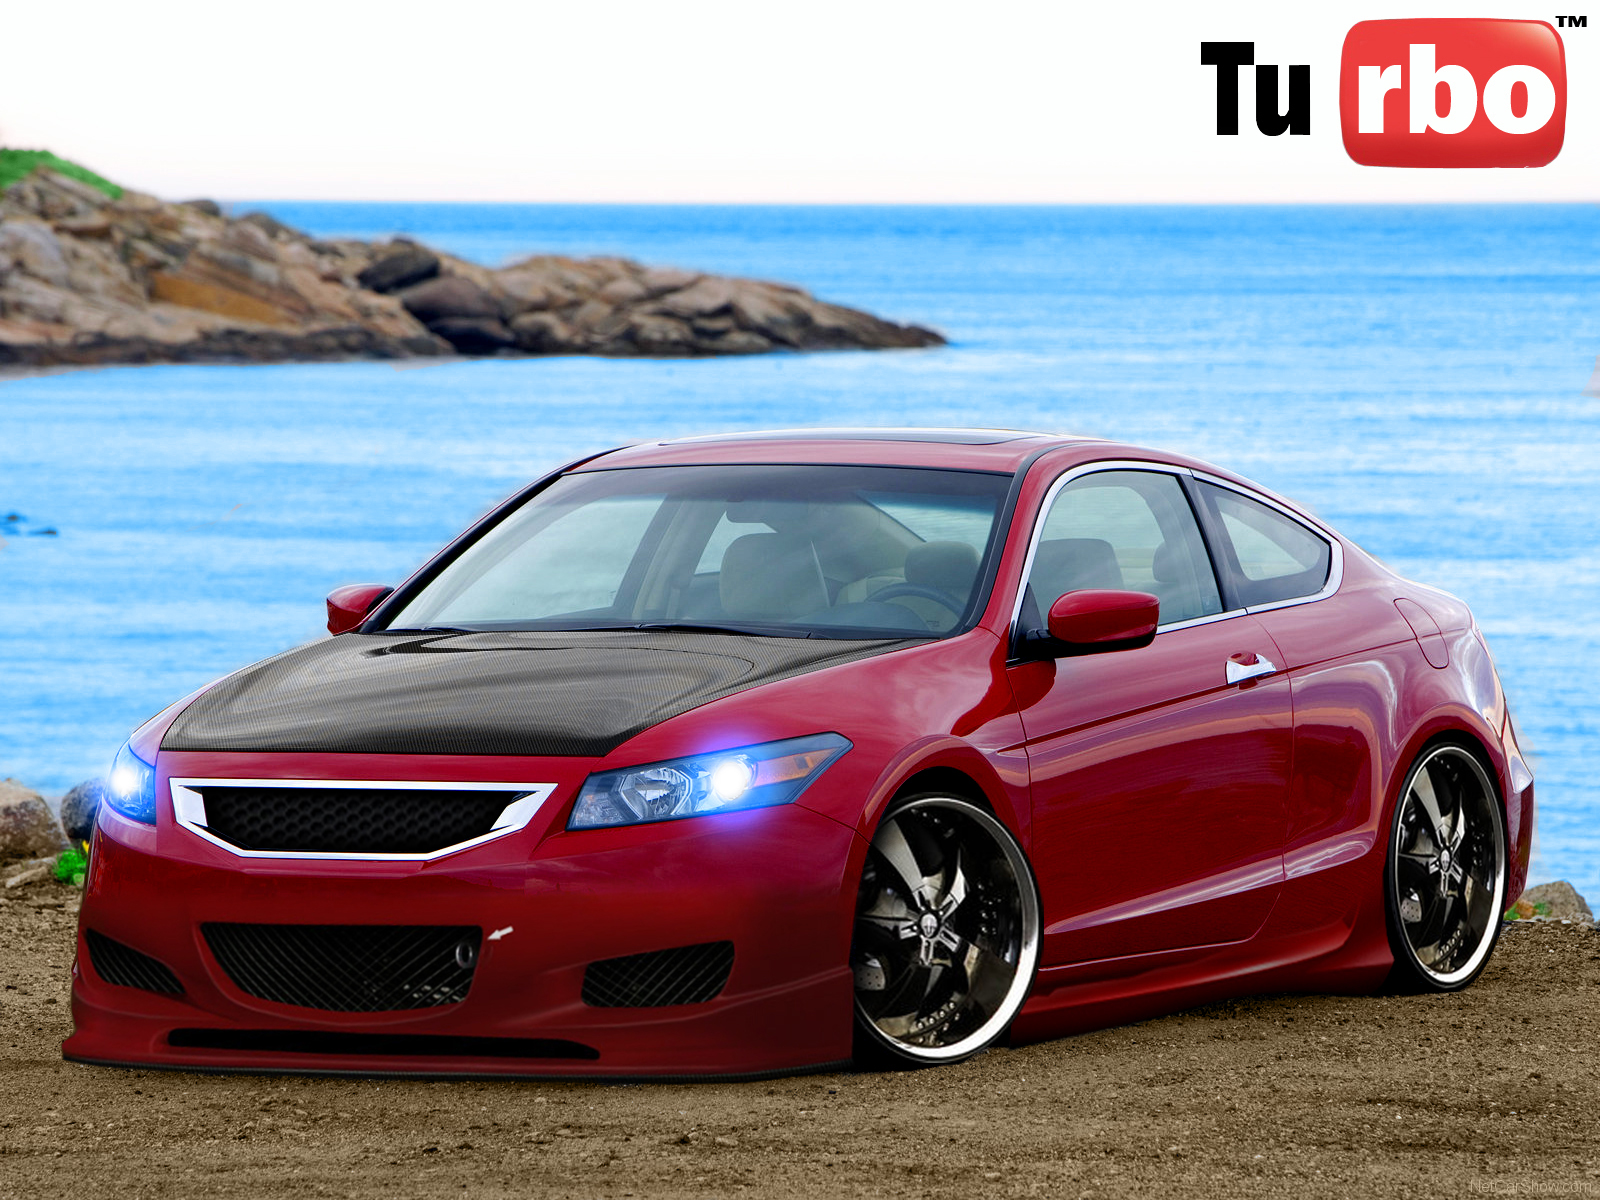 honda accord viii coupe 2009 pictures #12